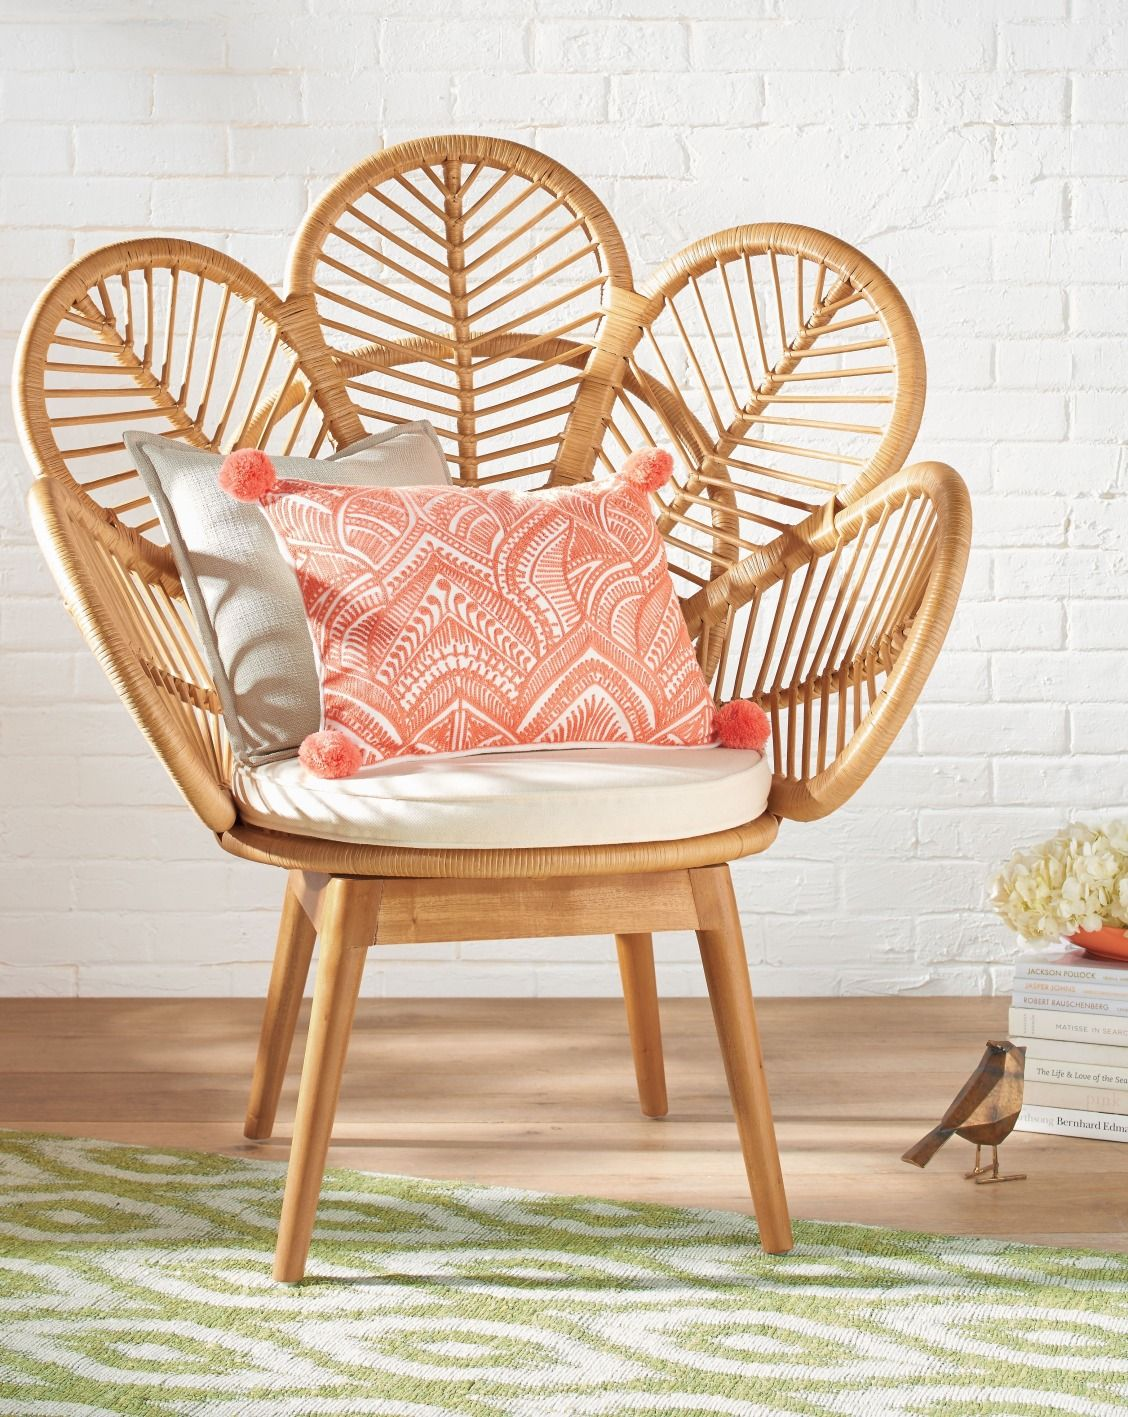 Blossom High Chair Our Exclusive Daisie Rattan Chair Is A Playful Yet